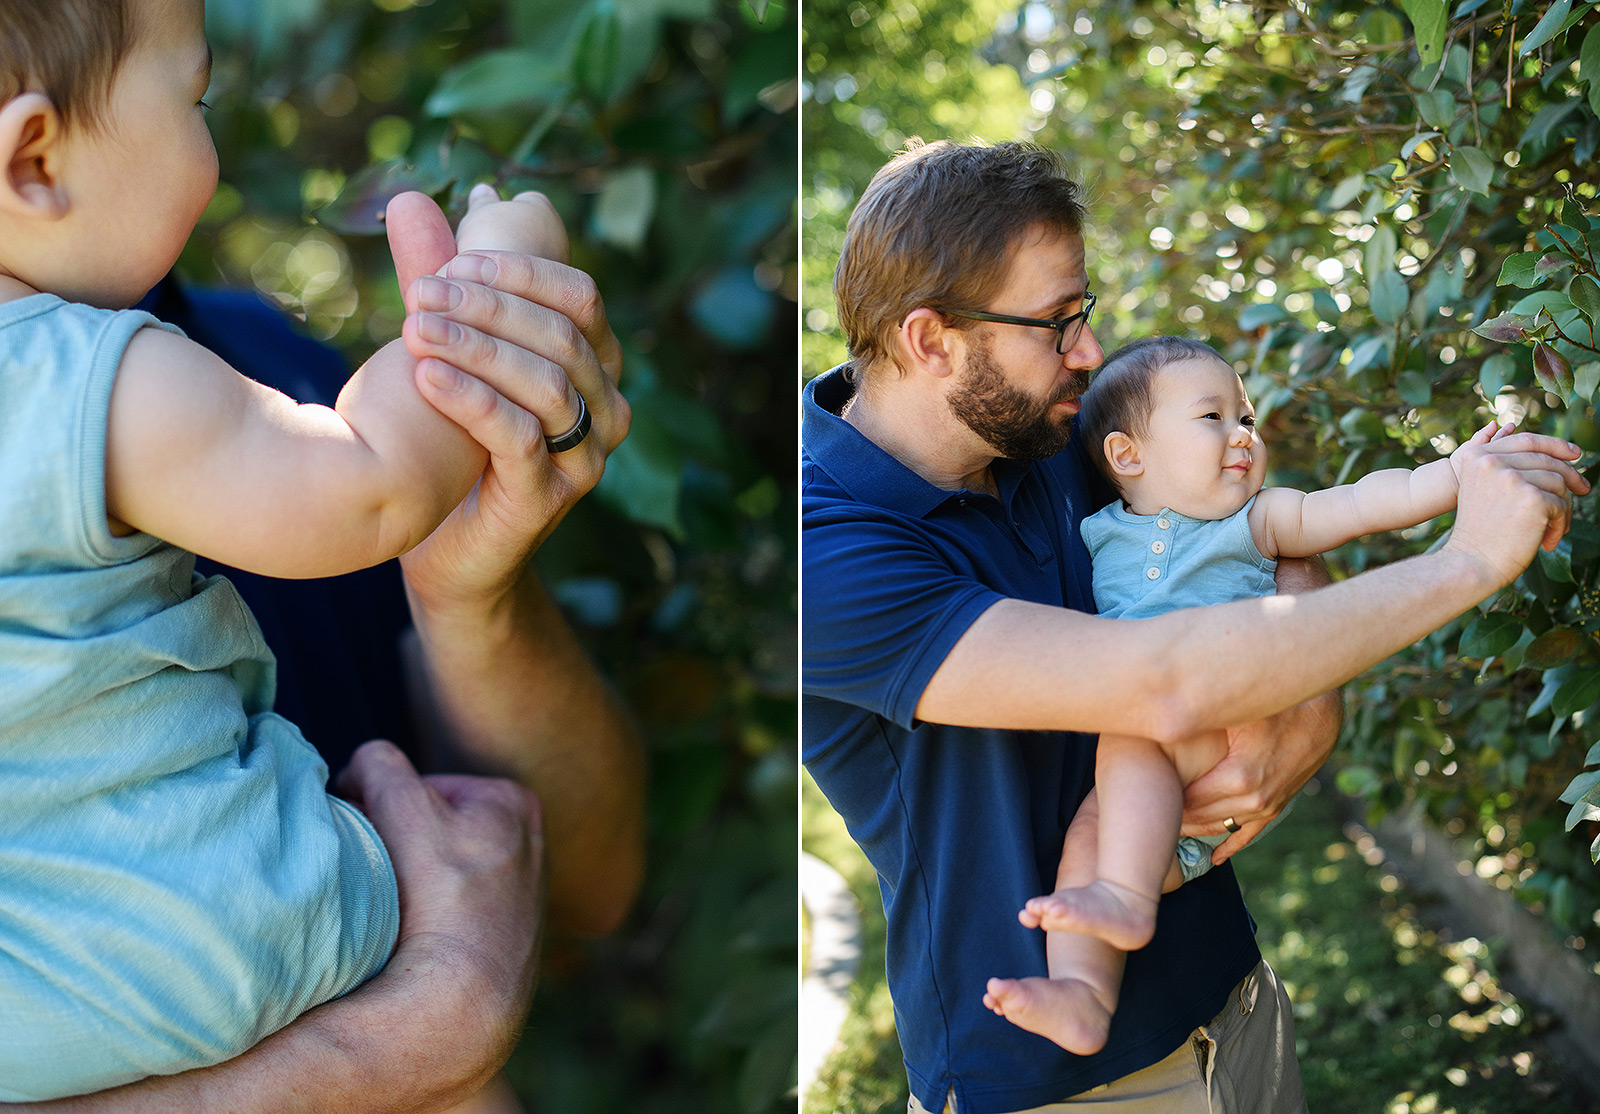 6 month old baby boy touching leaves with dad wearing blue